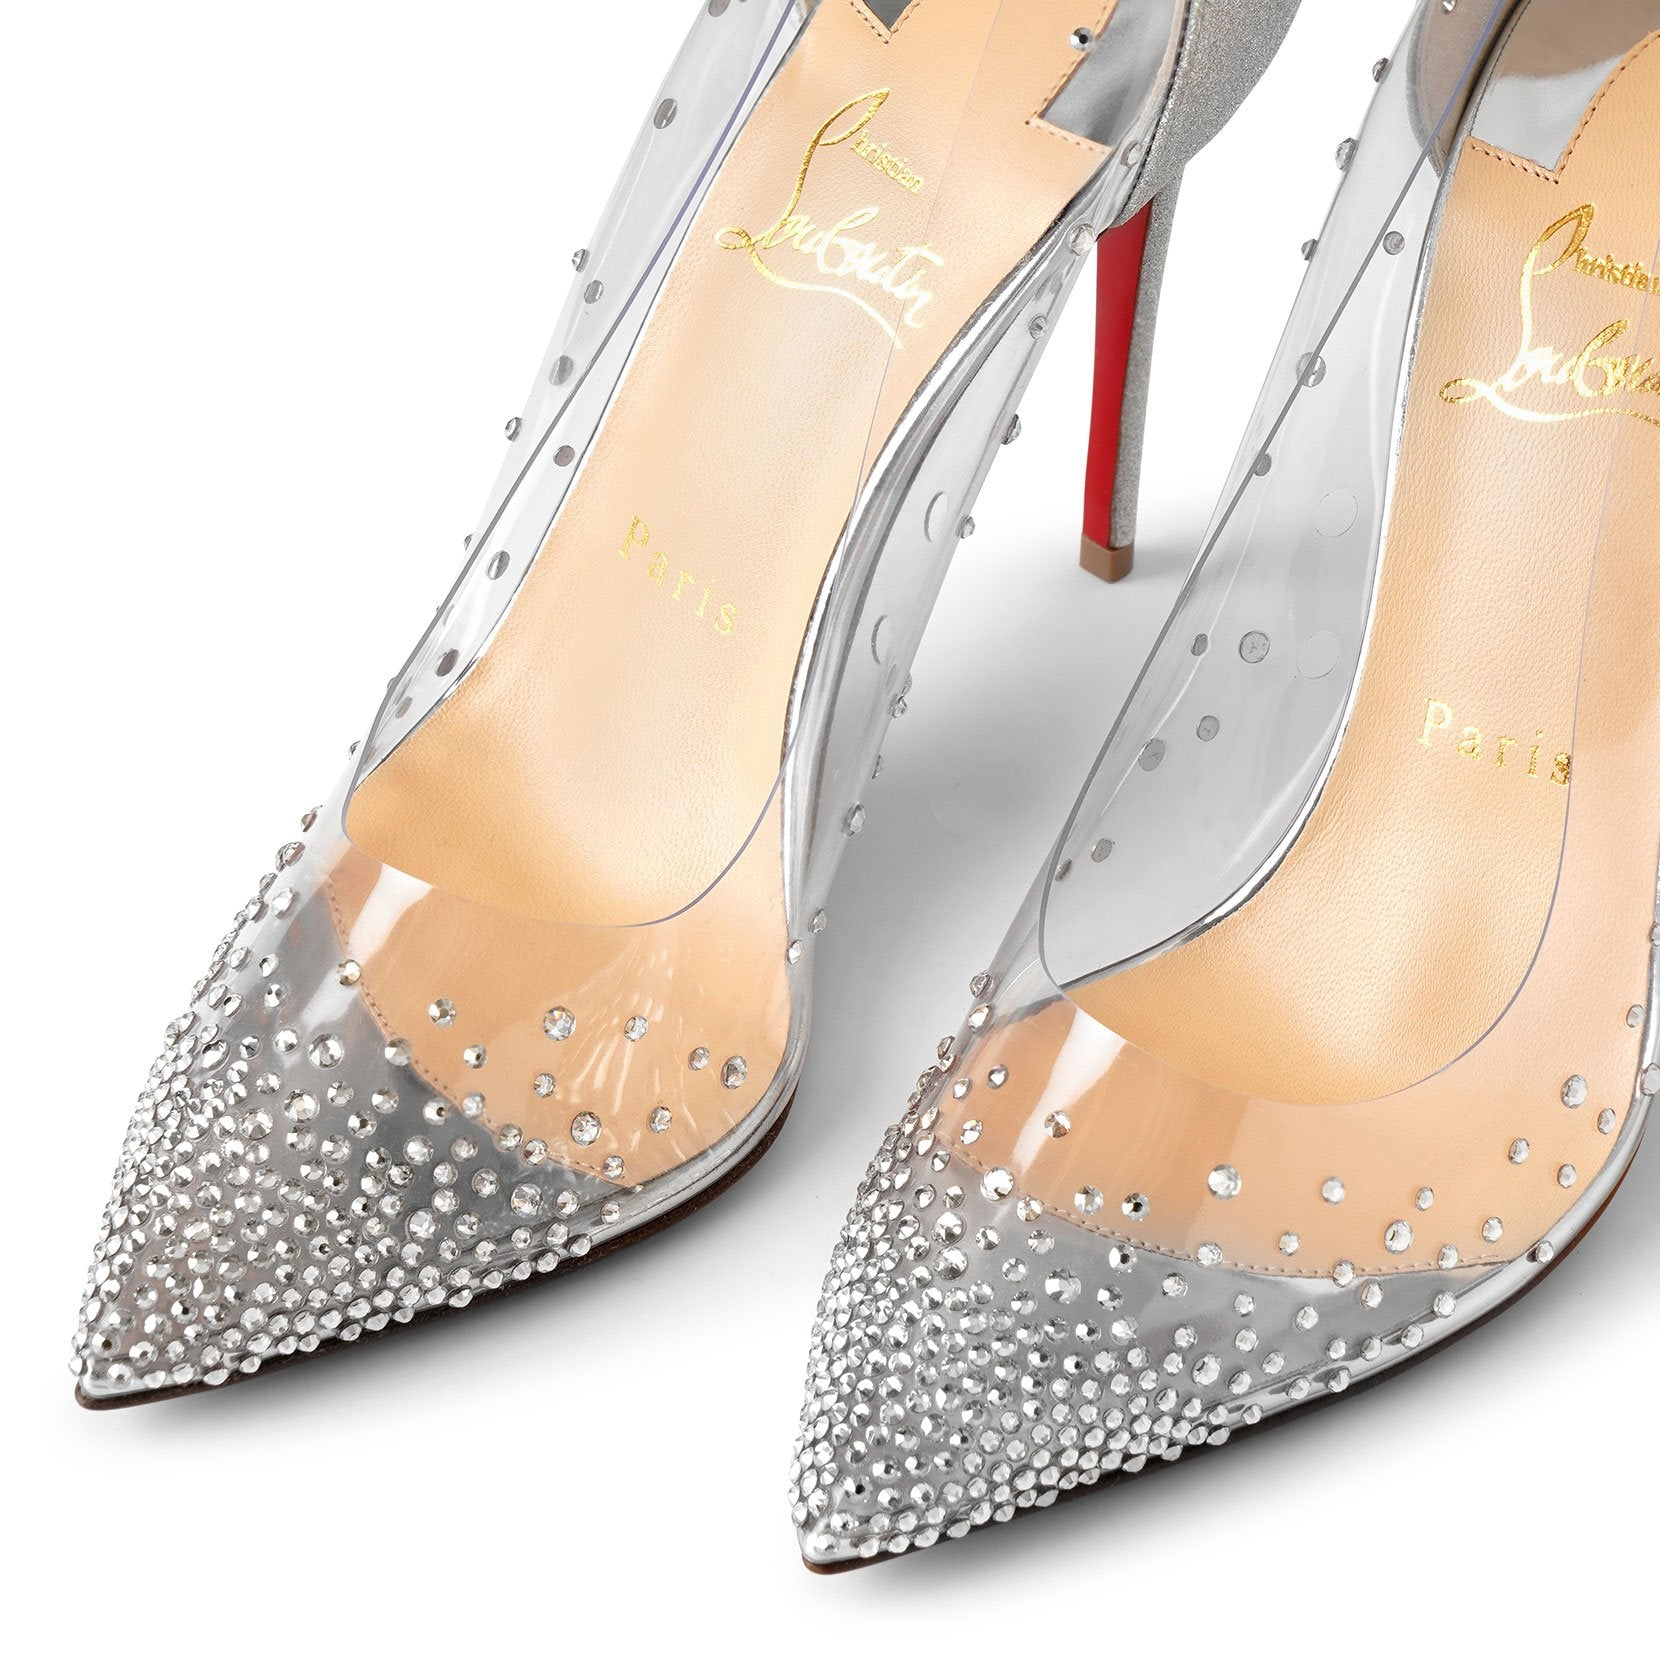 Degrastrass pvc 100 silver glitter pumps